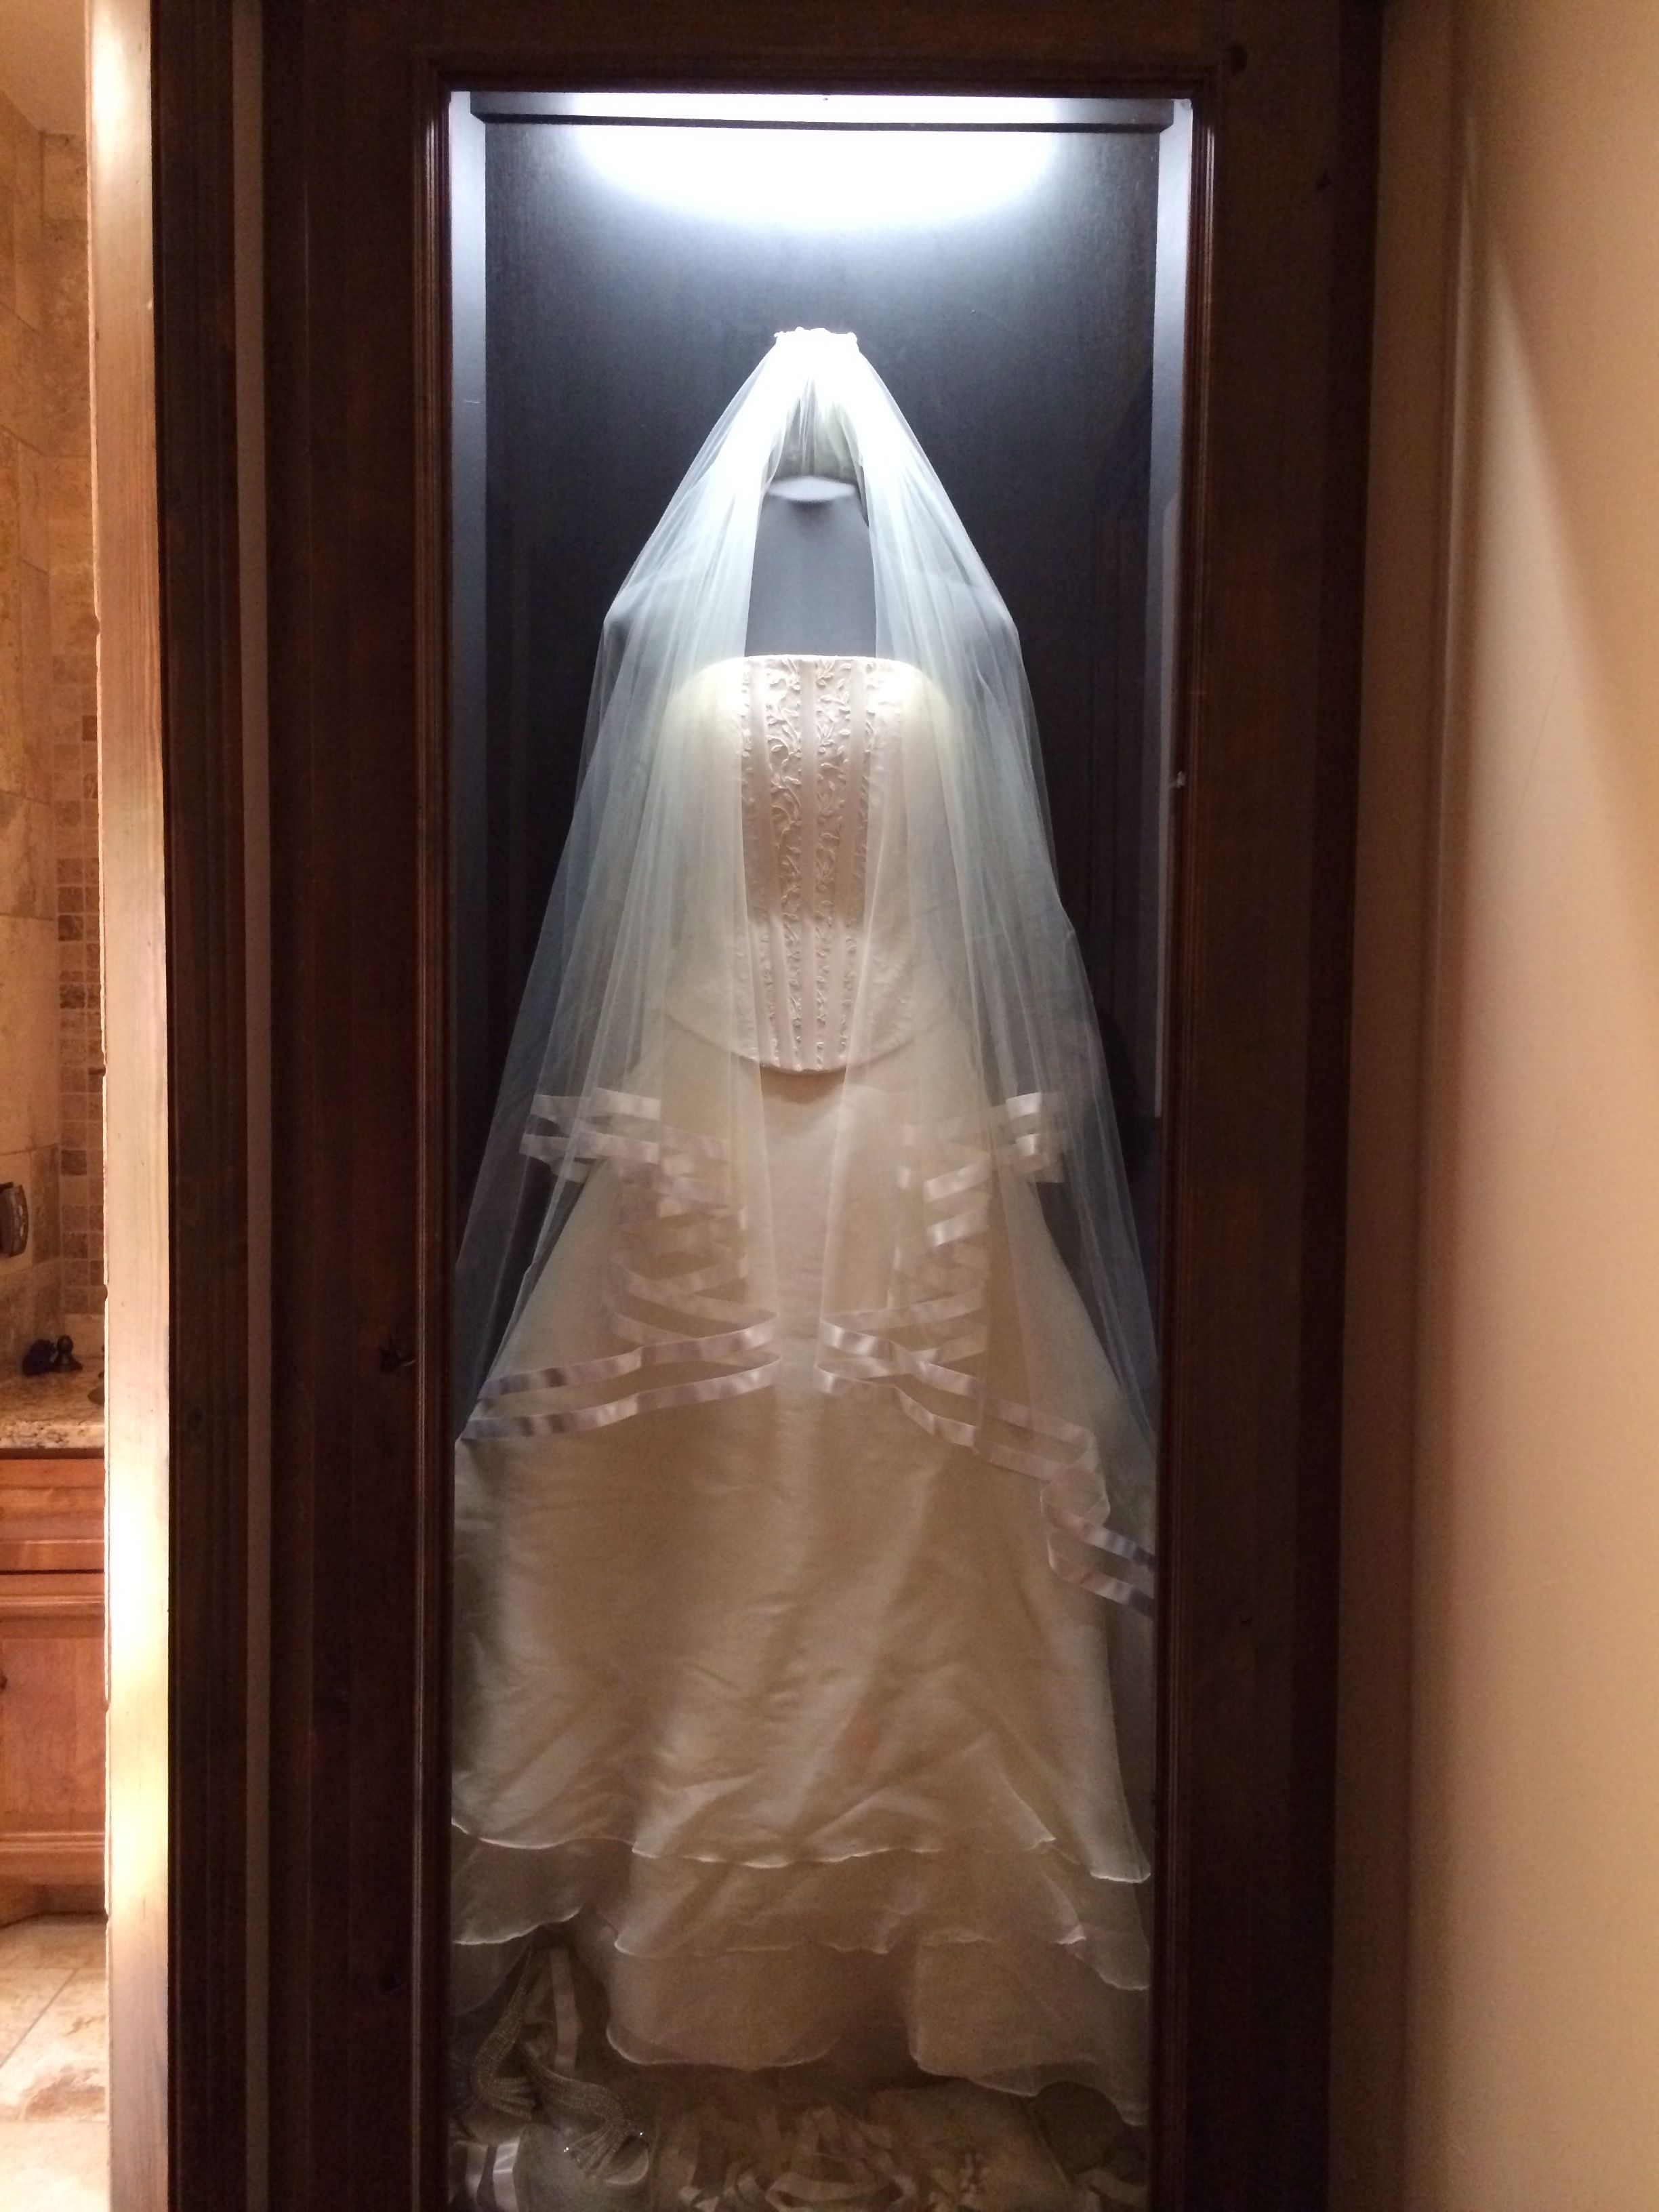 My Clients Wedding Dress A Built In Shadow Box With Her Wedding Gown Hung In The Hallway Th Wedding Dress Frame Wedding Dress Display Wedding Dress Shadow Box